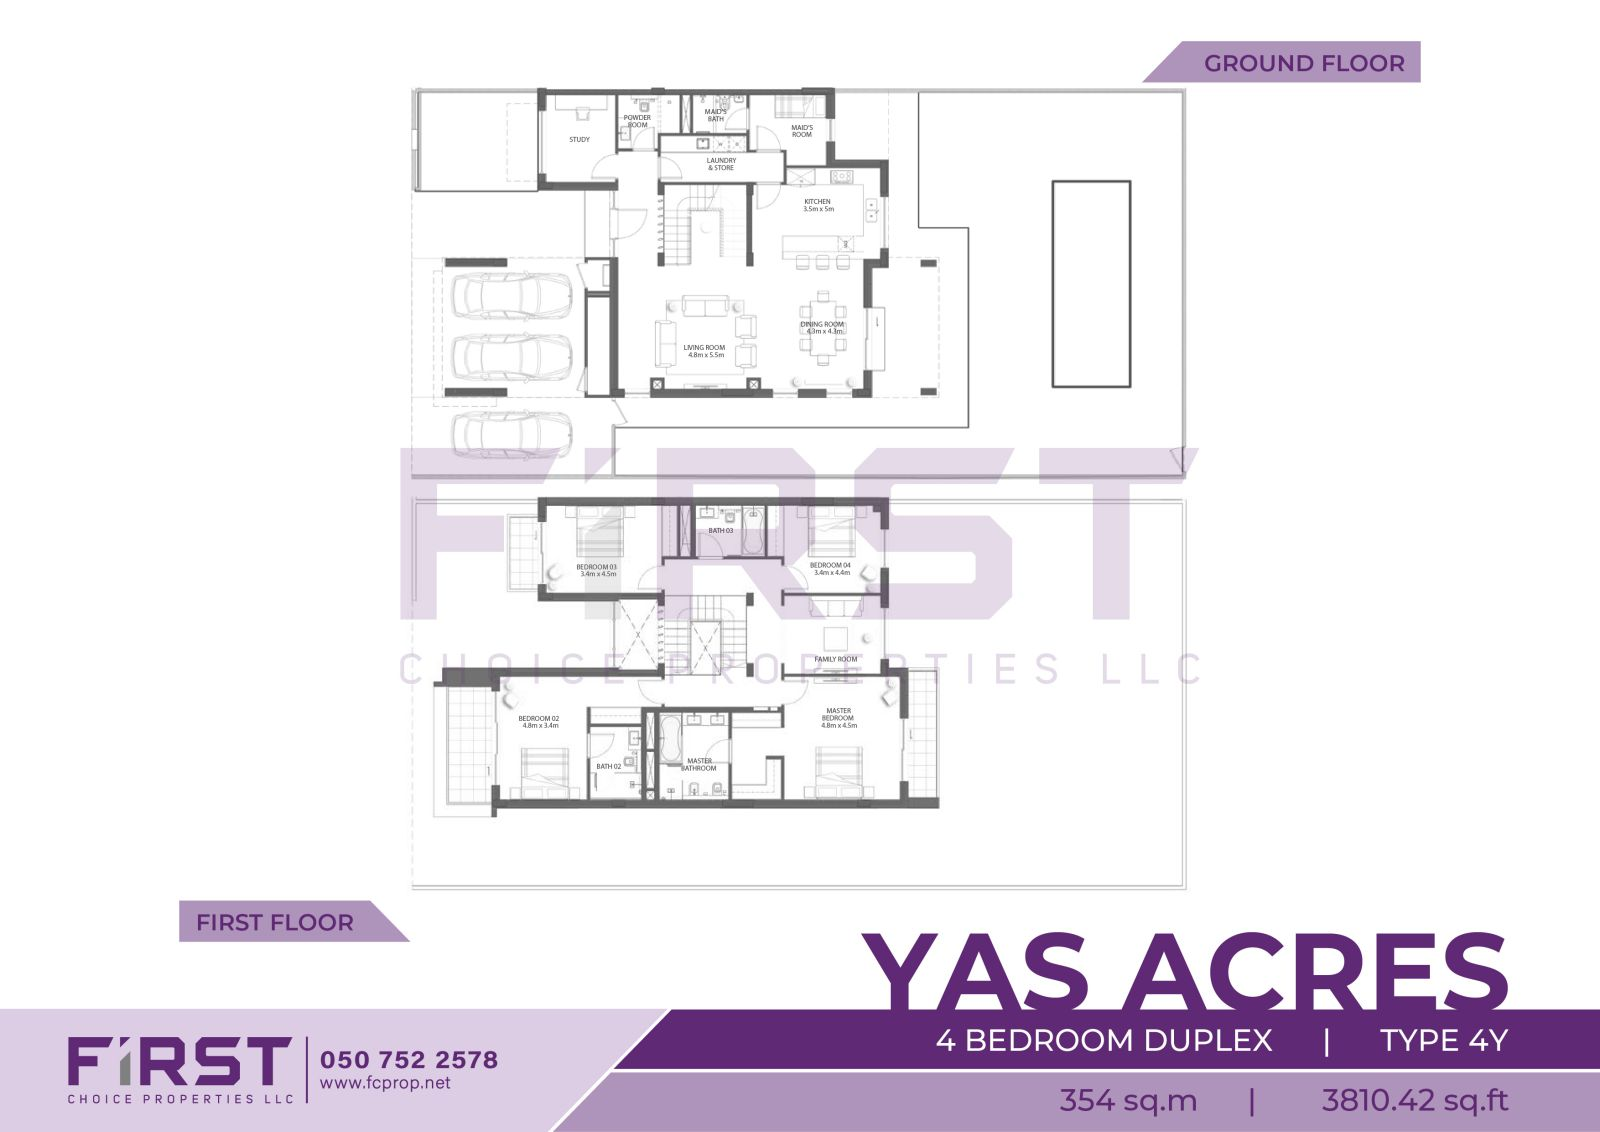 Floor Plan of 4 Bedroom Duplex Type 4Y in Yas Acres Yas Island Abu Dhabi UAE 354 sq.m 3810.42 sq.ft.jpg